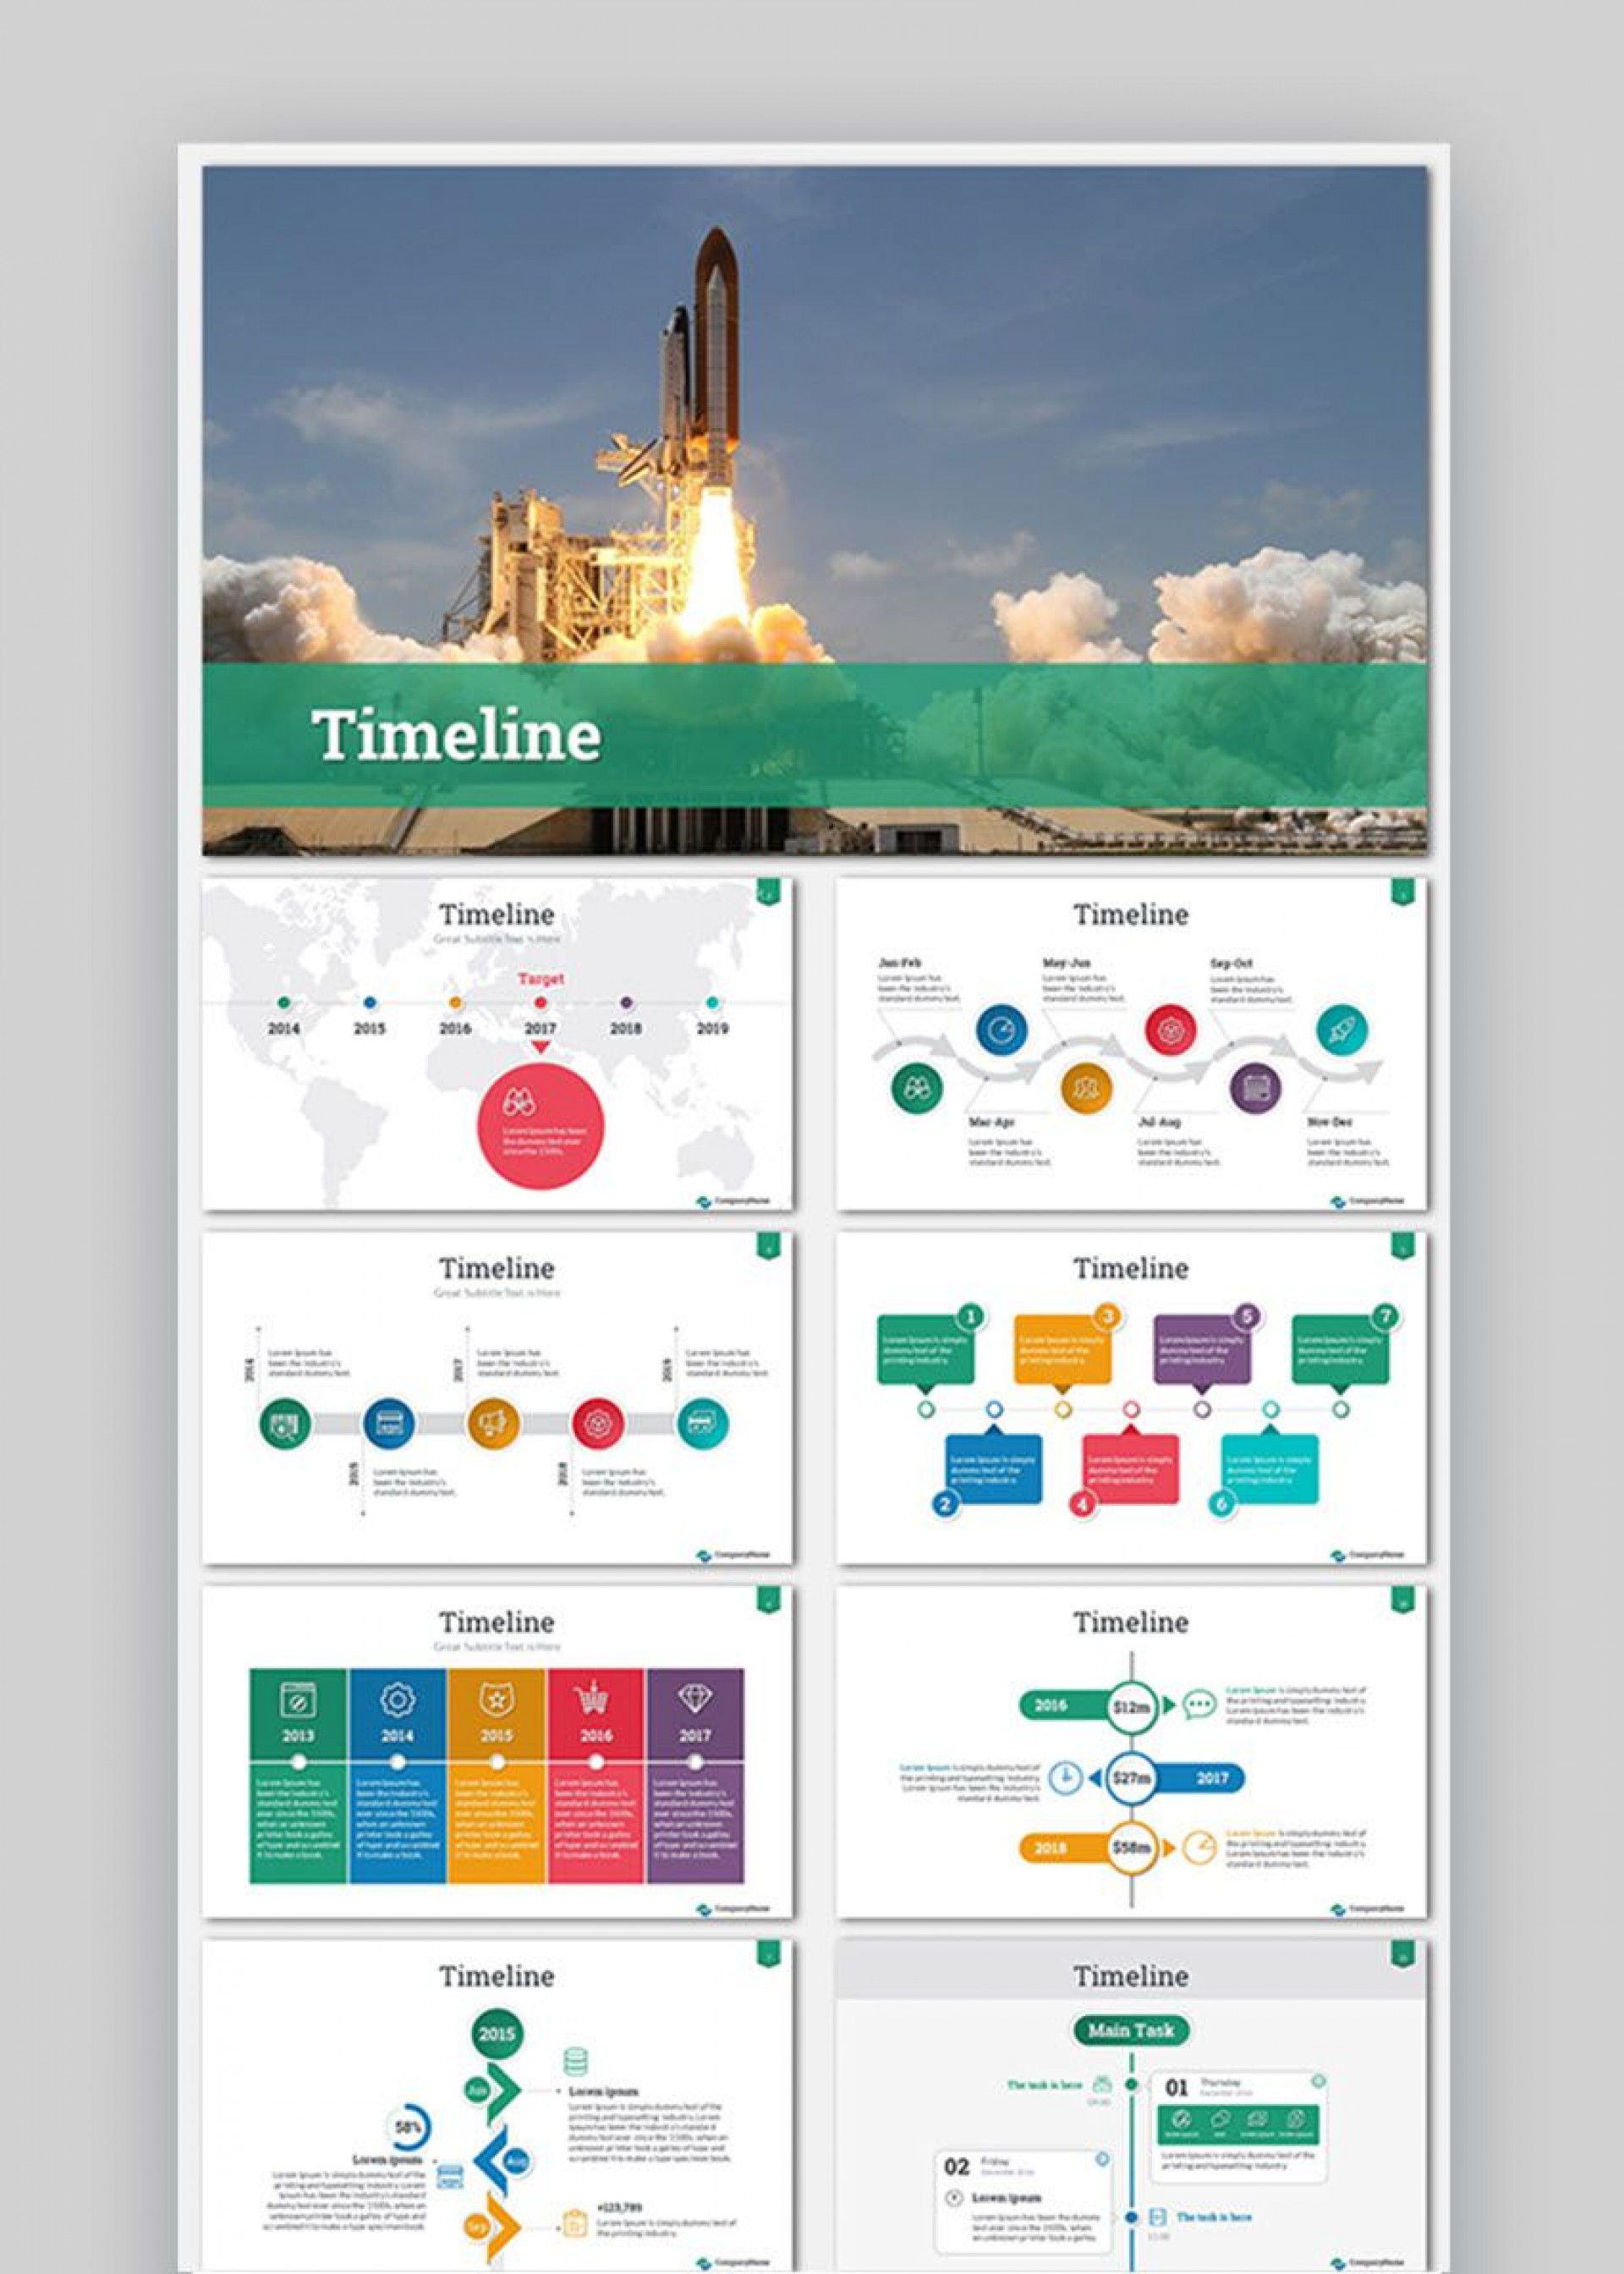 009 Astounding Timeline Template Presentationgo Highest Quality 1920